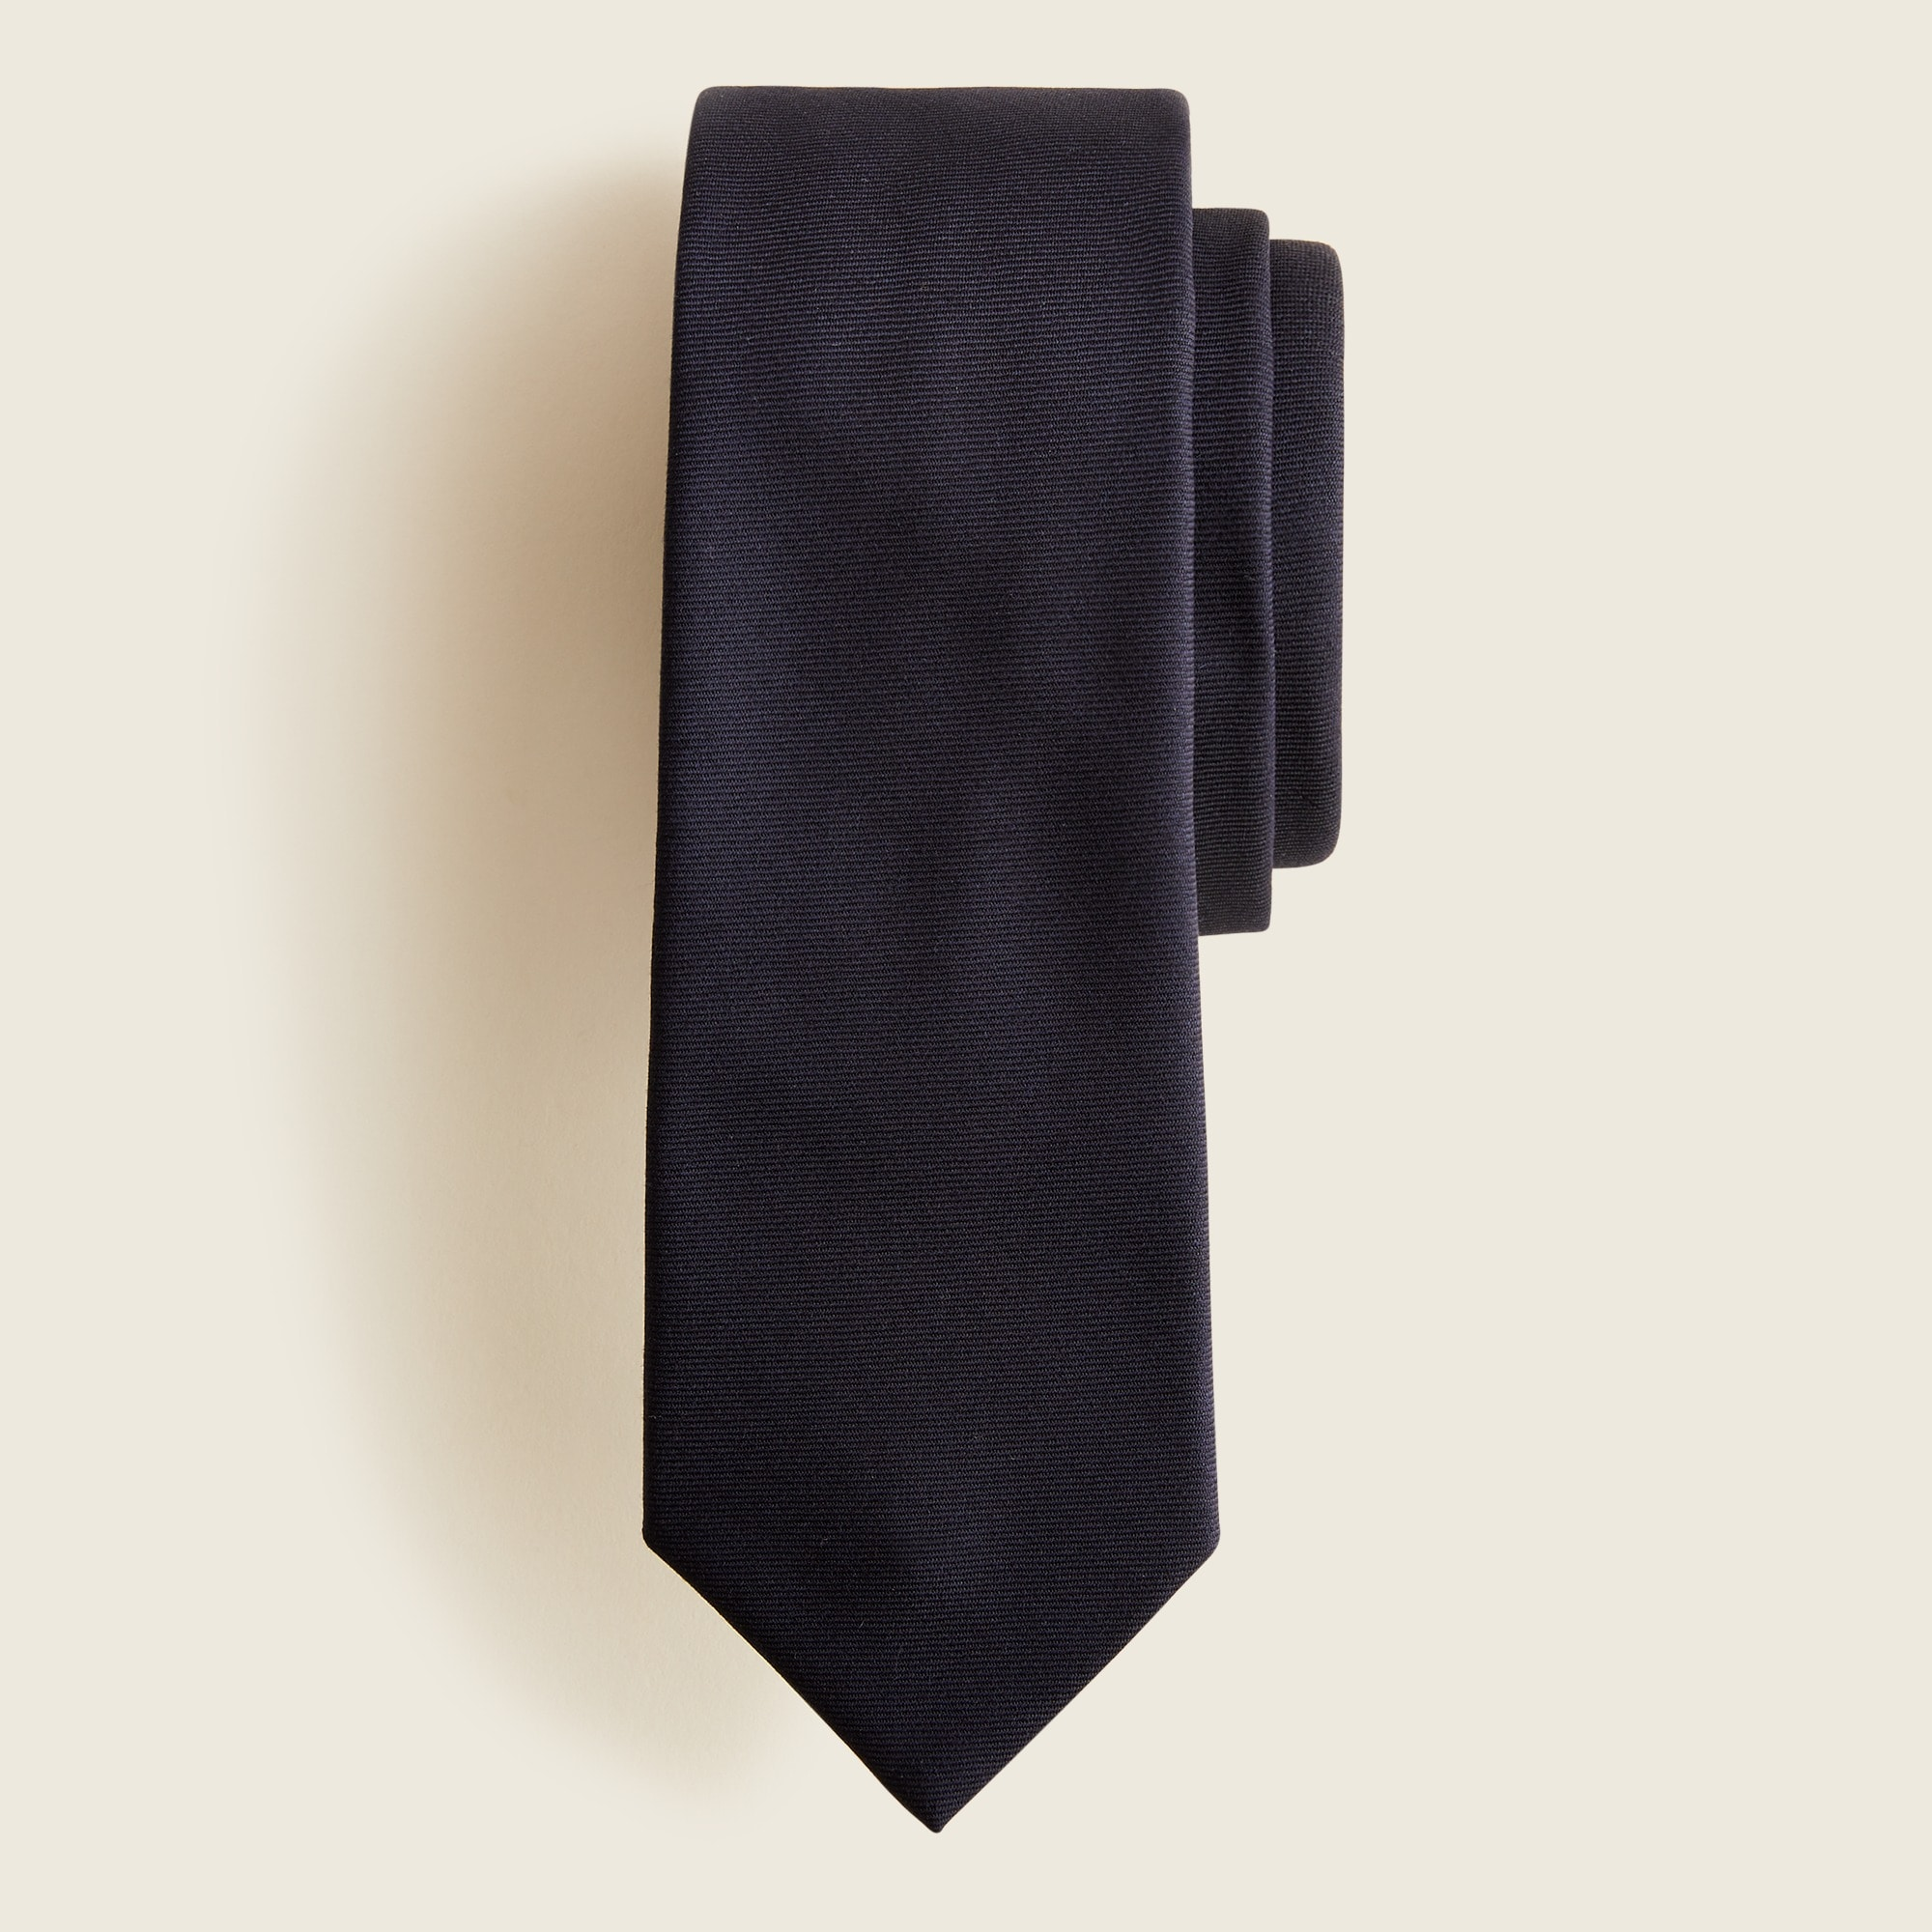 Image 2 for American wool tie in classic navy